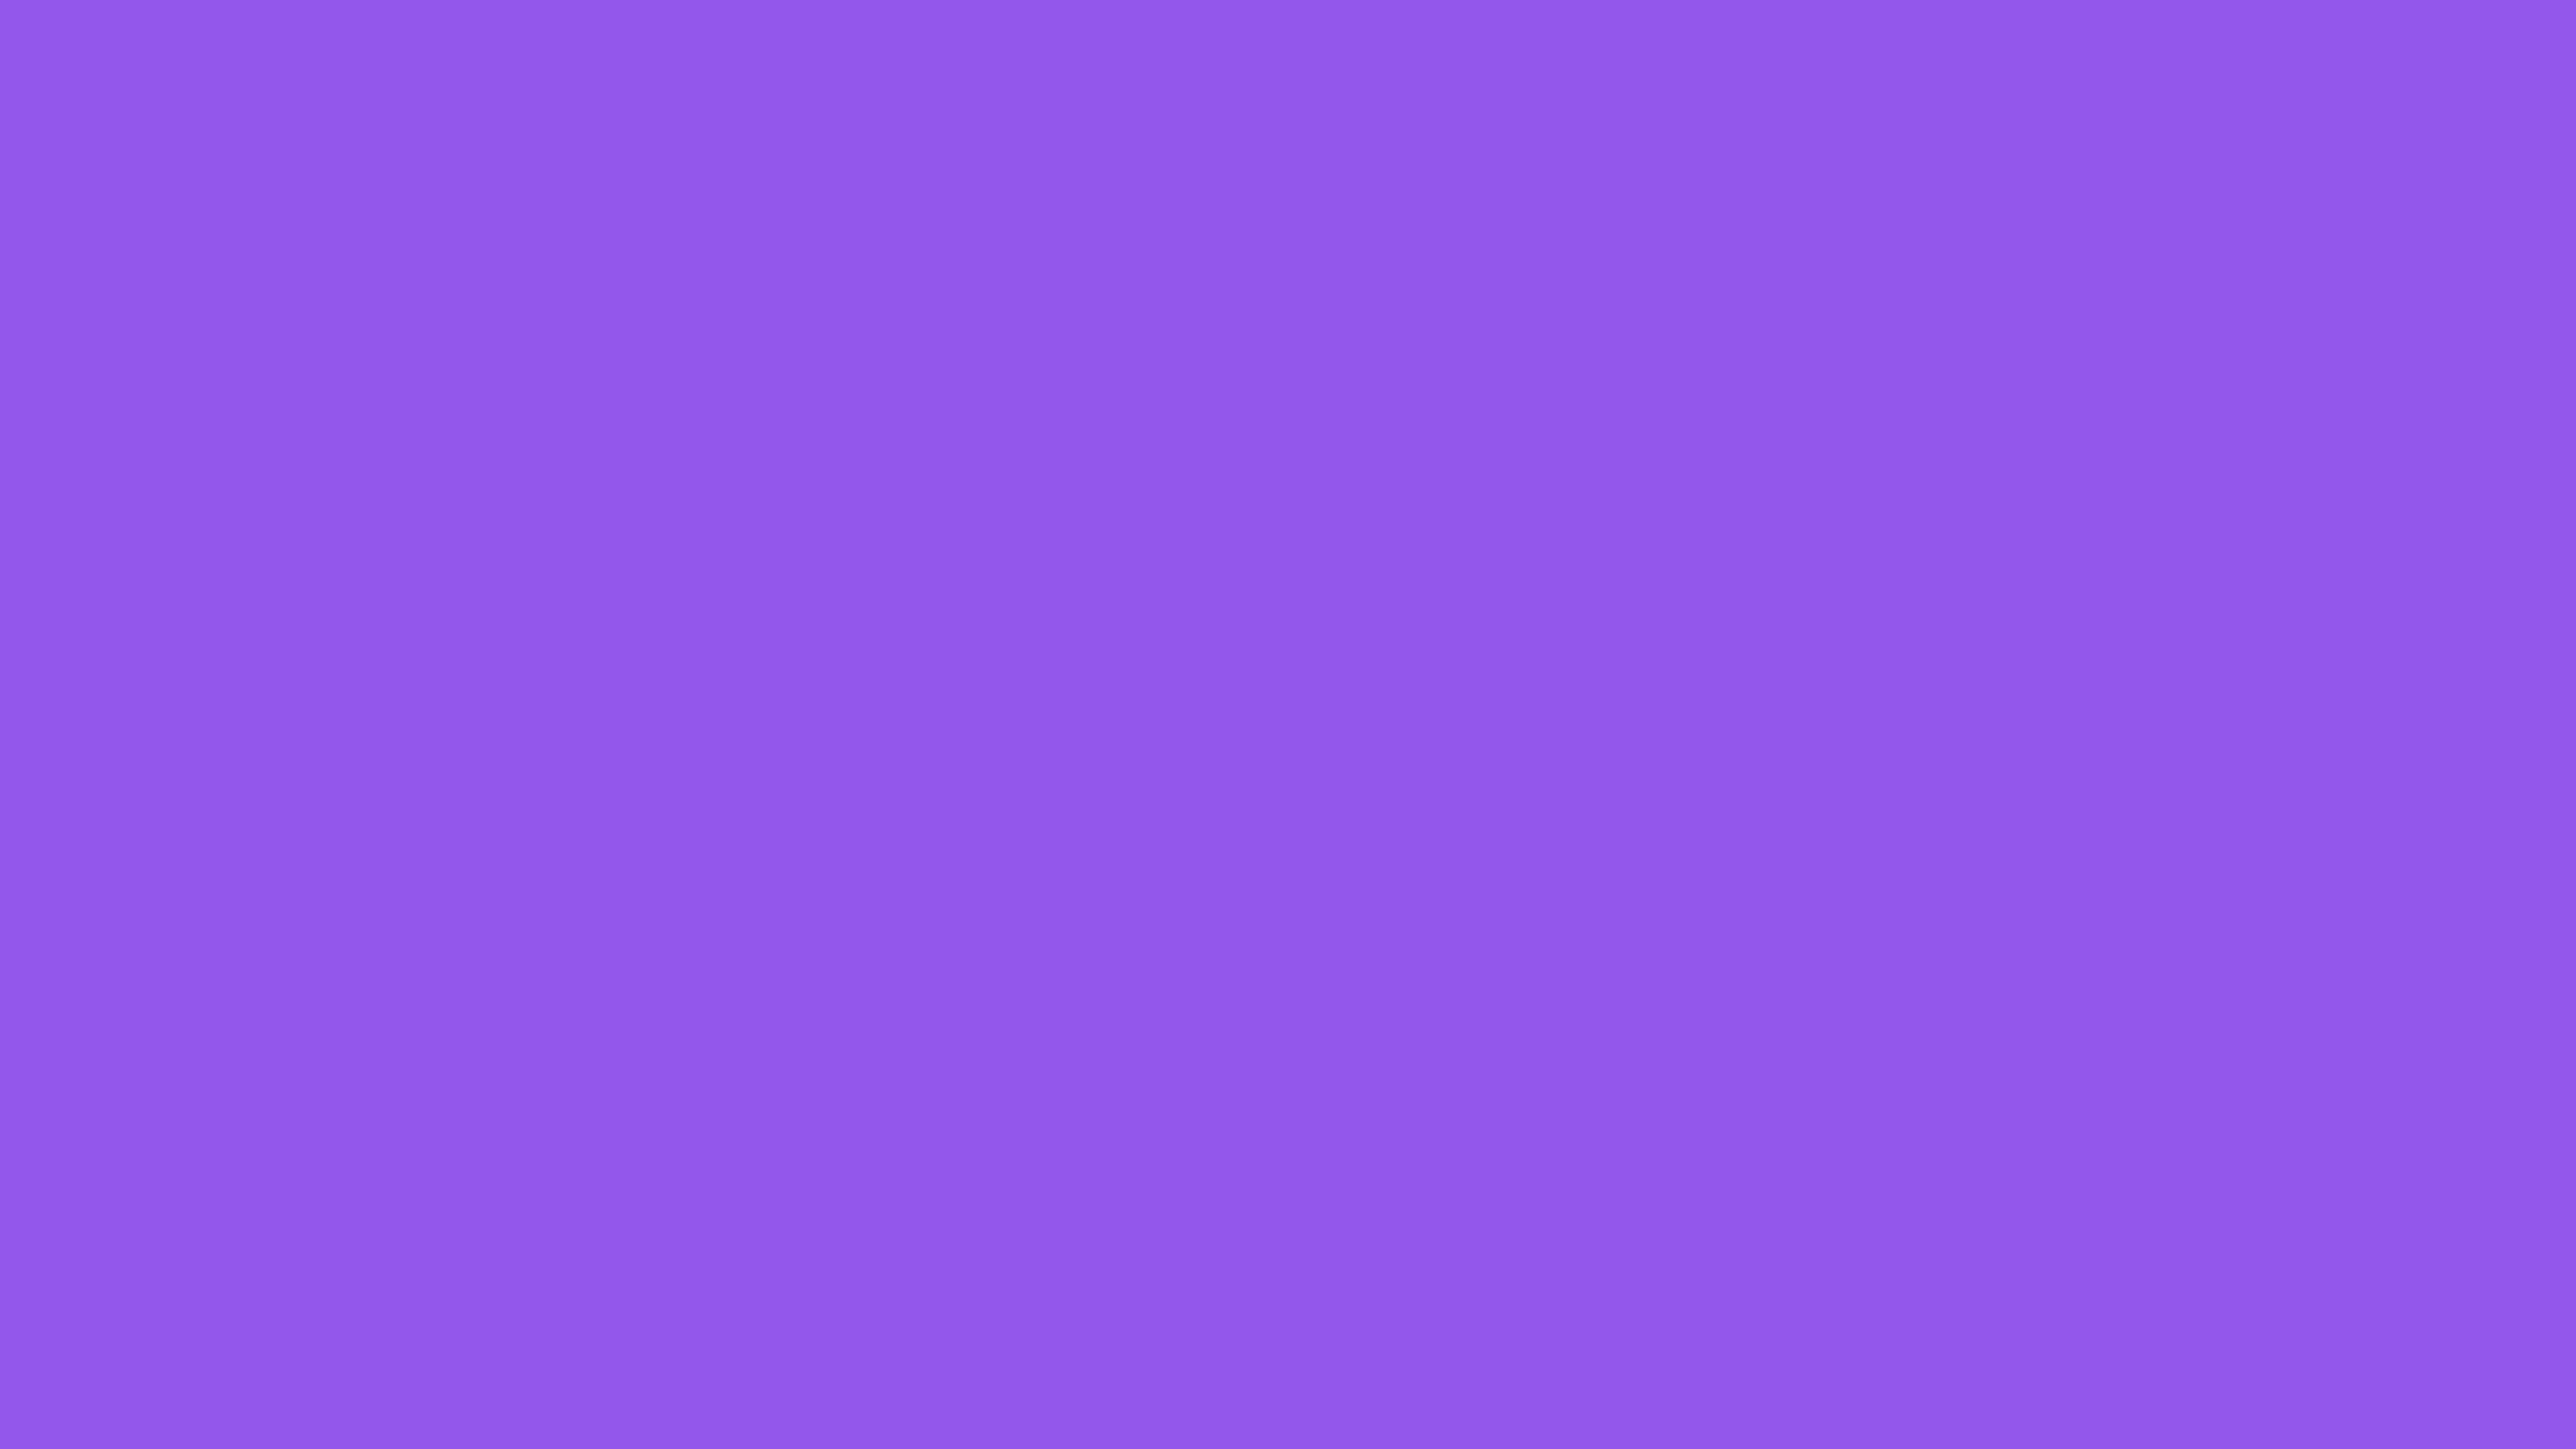 7680x4320 Navy Purple Solid Color Background